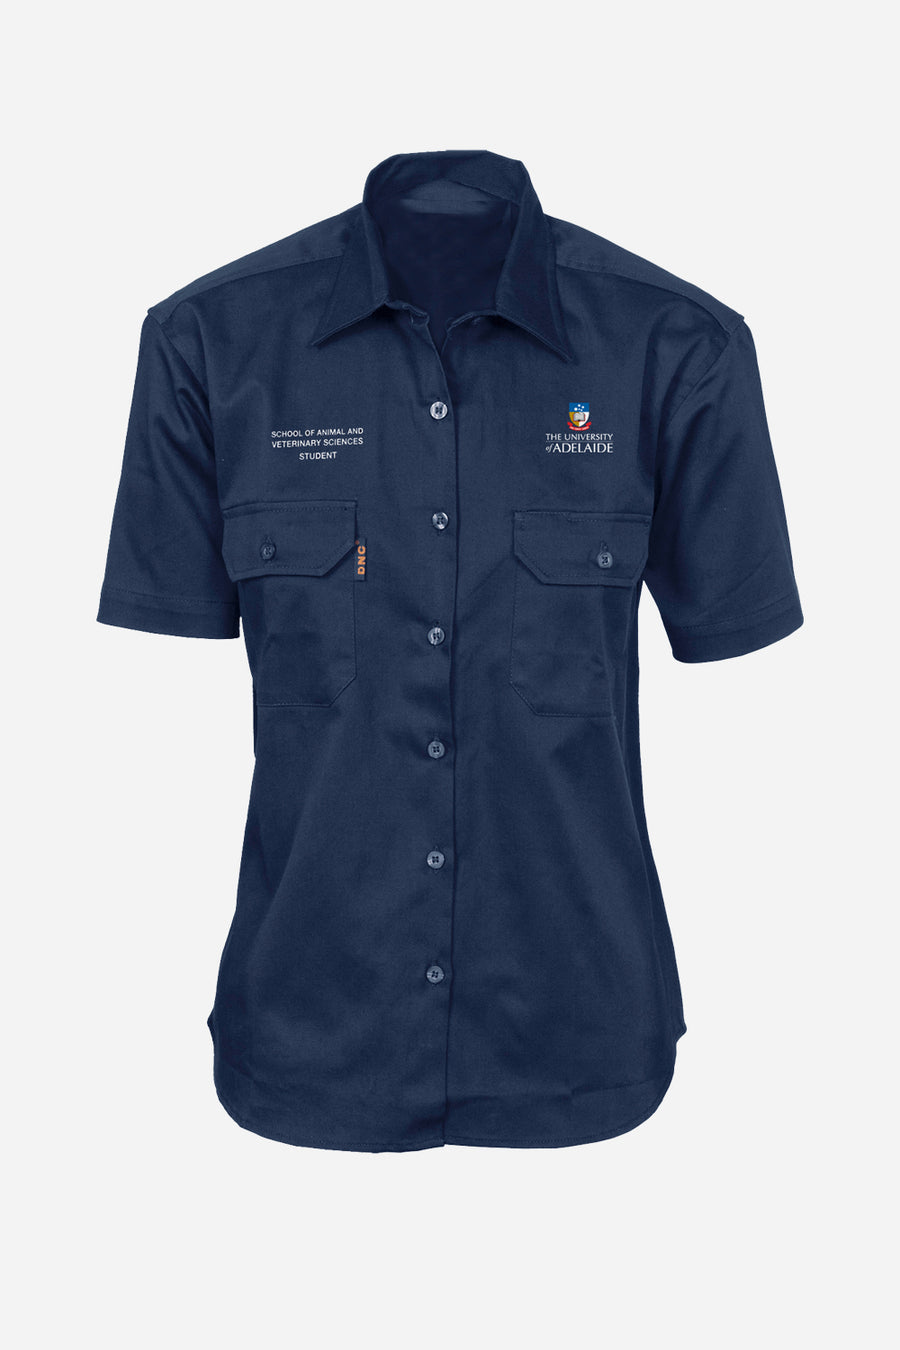 Veterinary drill shirt navy S/S women's